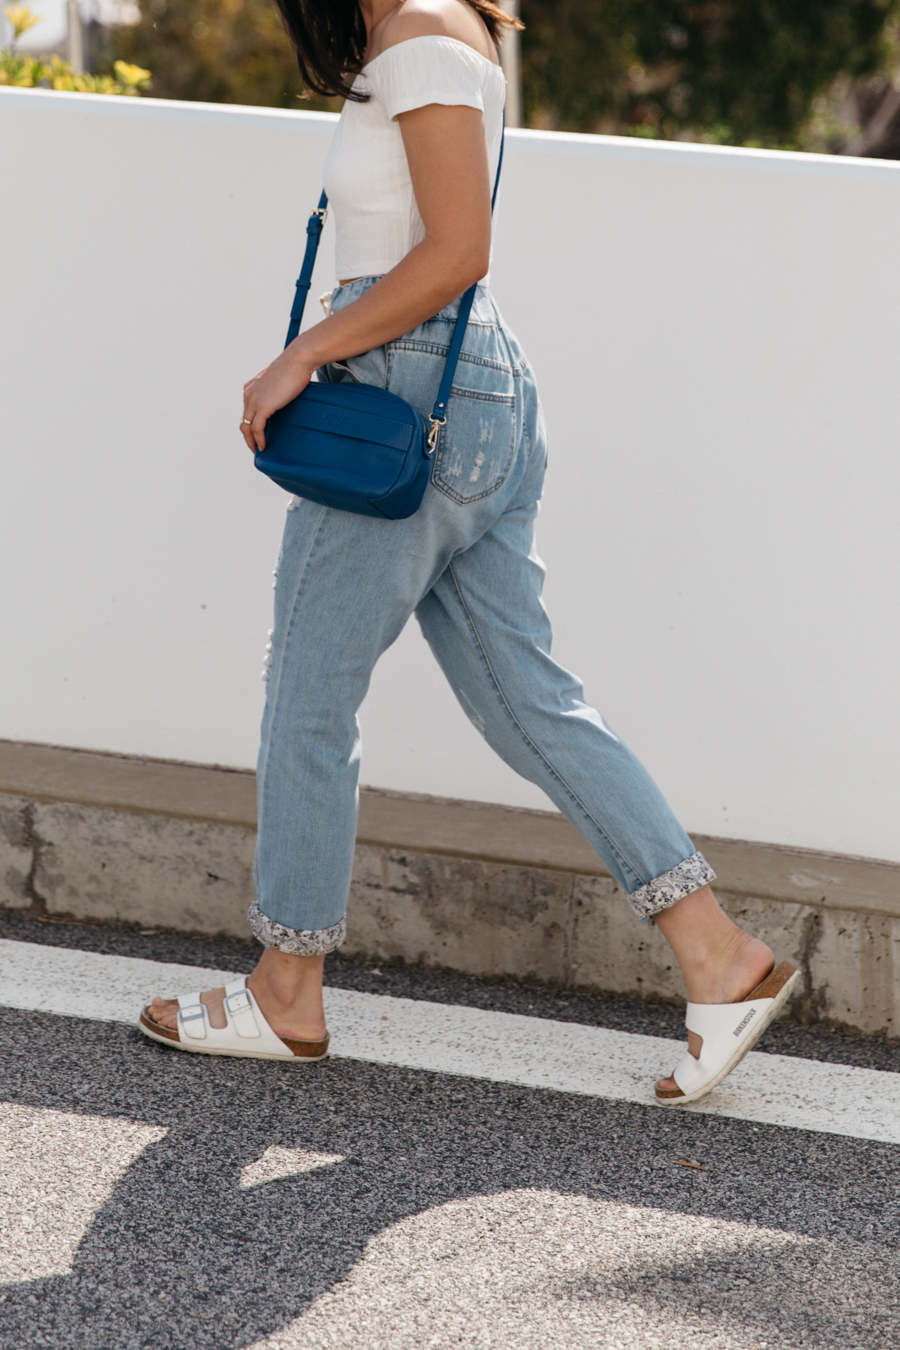 Drawstring boyfriend jeans with white Birkenstock sandals.